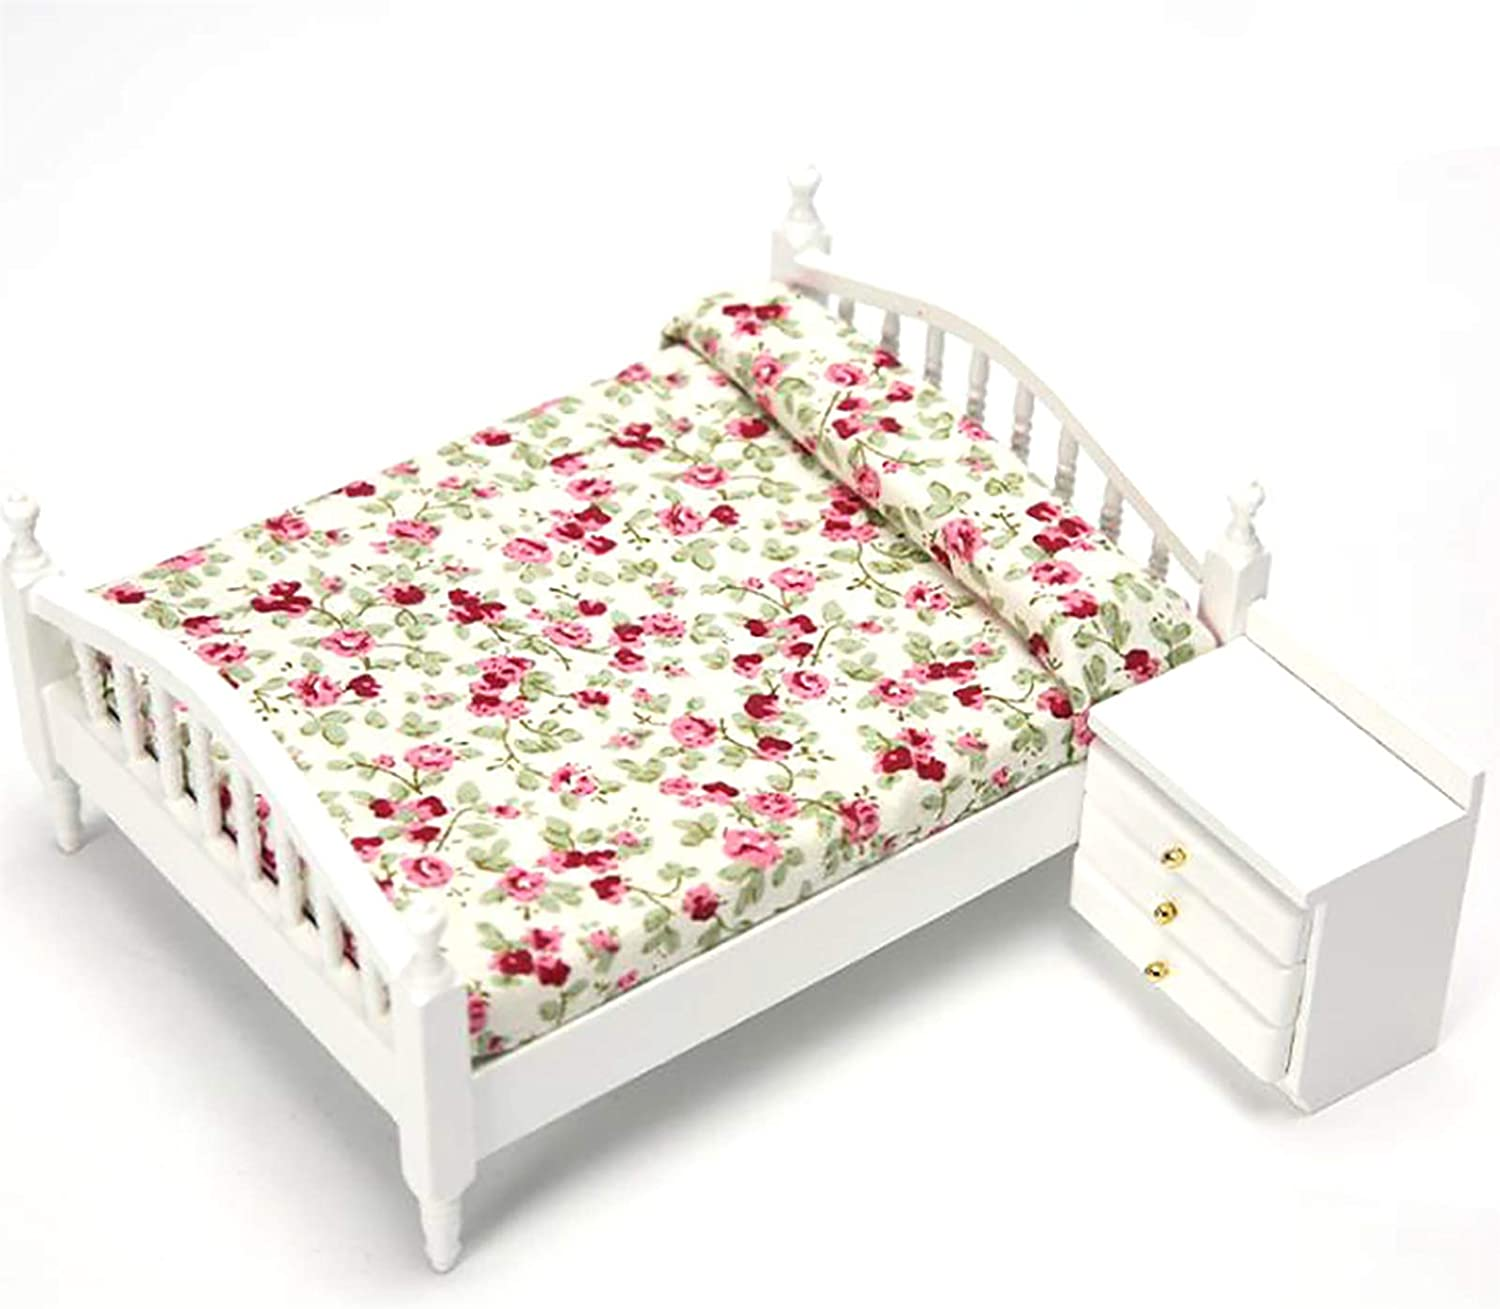 RUIYELE 1/12 Wooden Miniature Double Bed and Bedside Table, Mini Dollhouse Bedroom Miniature Furniture Model, Simulation Tiny Double Bed Kids Toy DIY Home Decoration Gifts (Style 3)